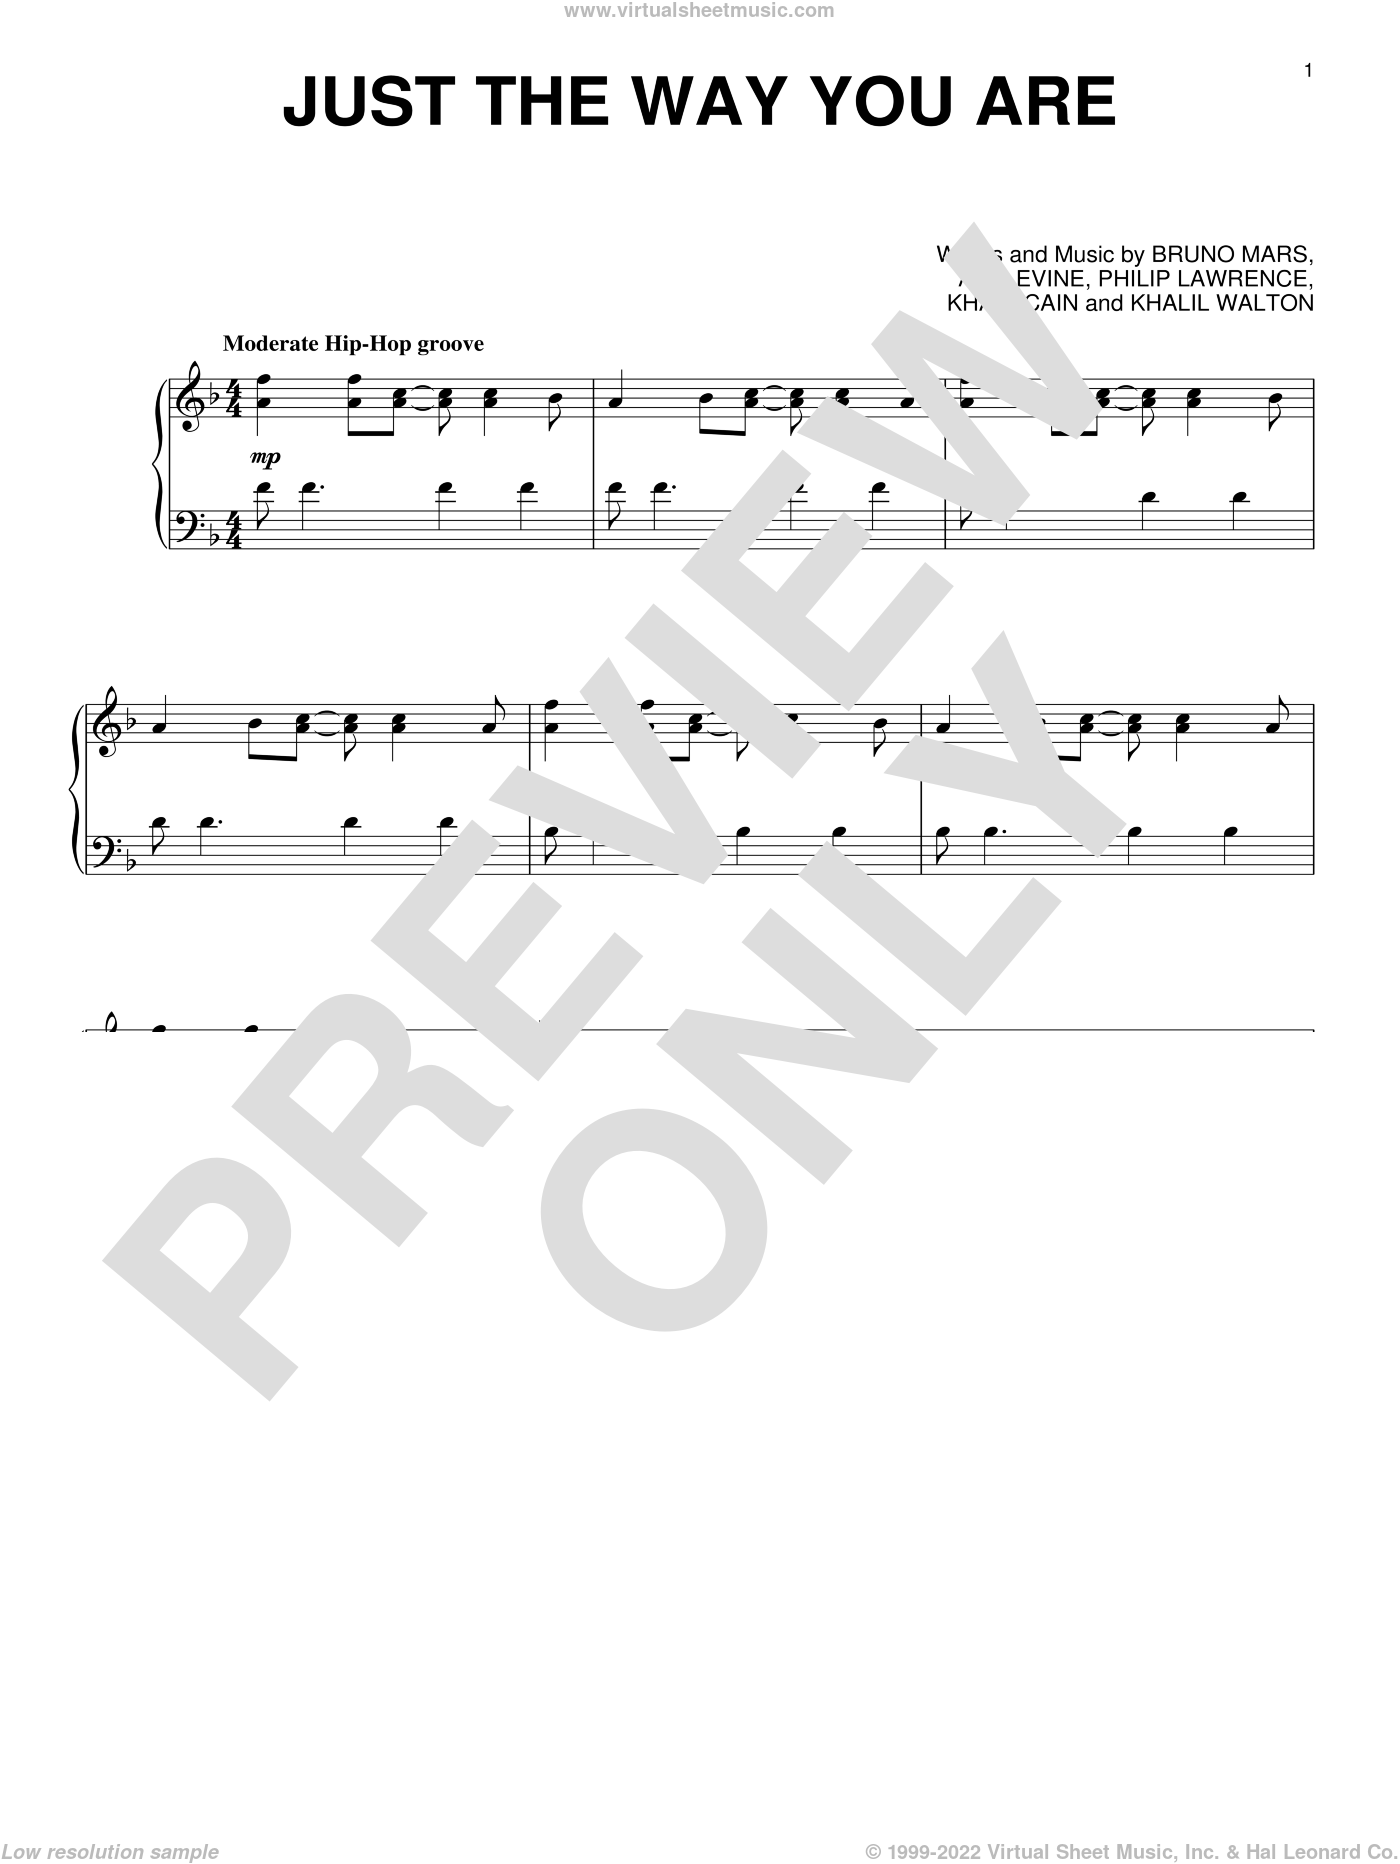 Just The Way You Are sheet music for piano solo by Bruno Mars, Ari Levine, Khalil Walton, Khari Cain and Philip Lawrence, intermediate skill level